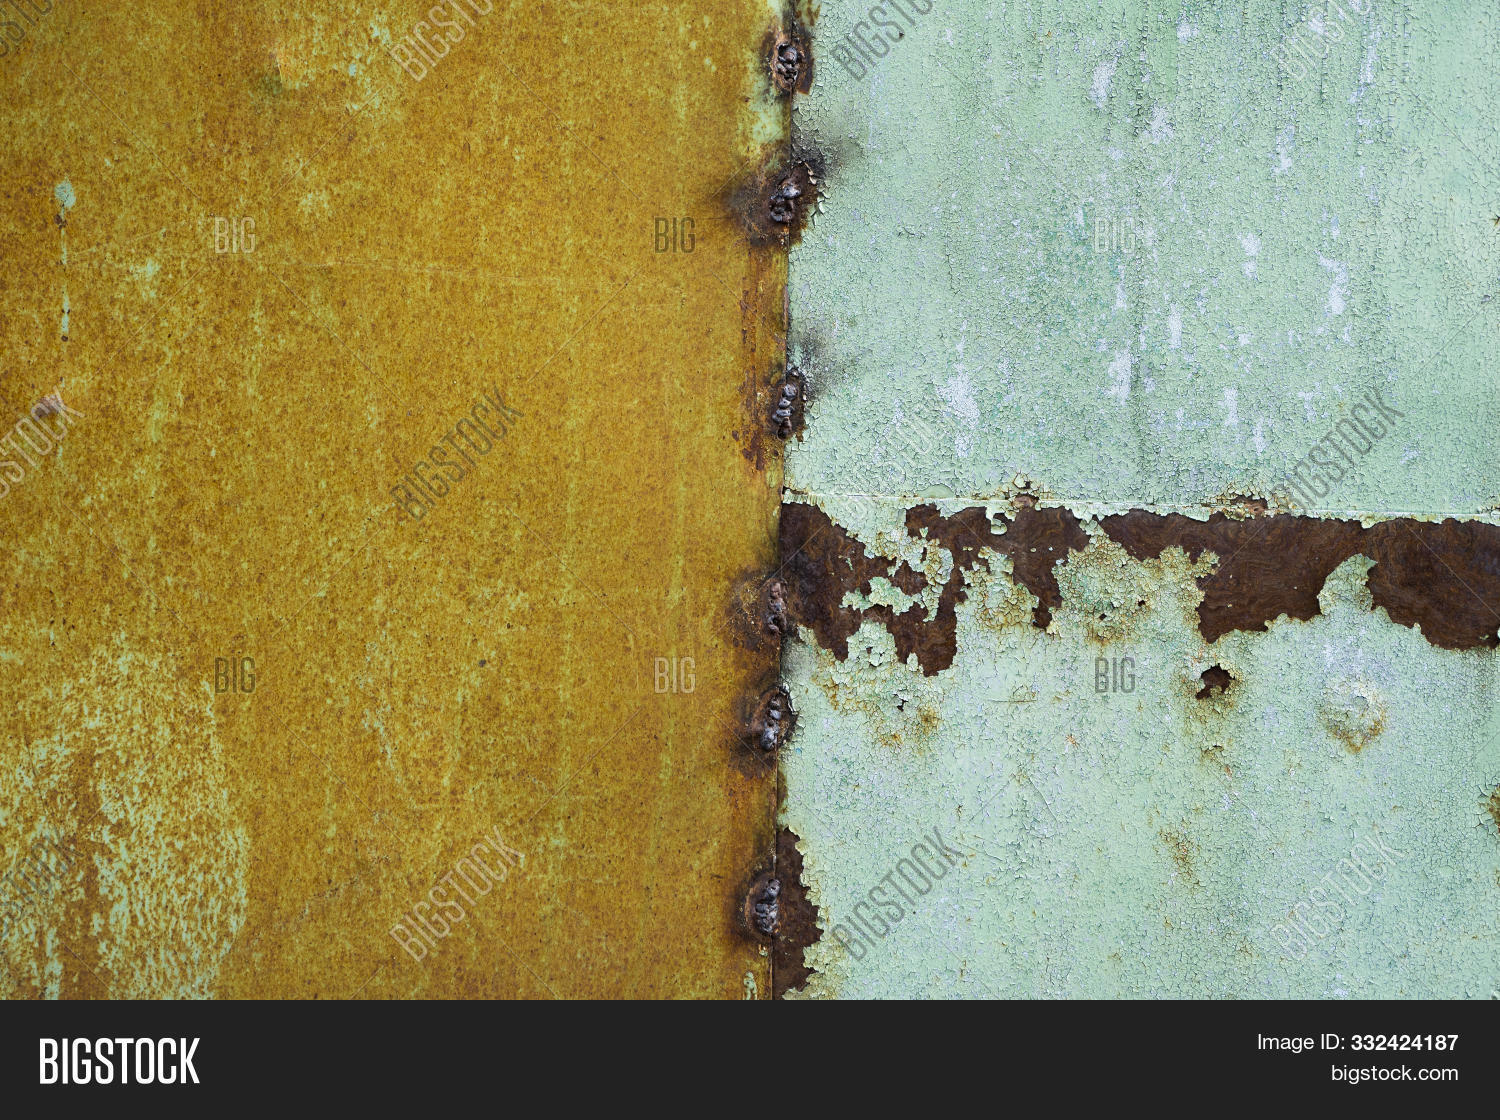 abstract,art,backdrop,background,beam,bridge,brown,color,construction,corroded,corrosion,design,dirty,erosion,green,grunge,industrial,iron,messy,metal,metallic,old,orange,oxidized,paint,painted,pattern,plate,red,retro,rough,rust,rusted,rusty,stain,steel,structure,surface,texture,textured,vintage,wall,weathered